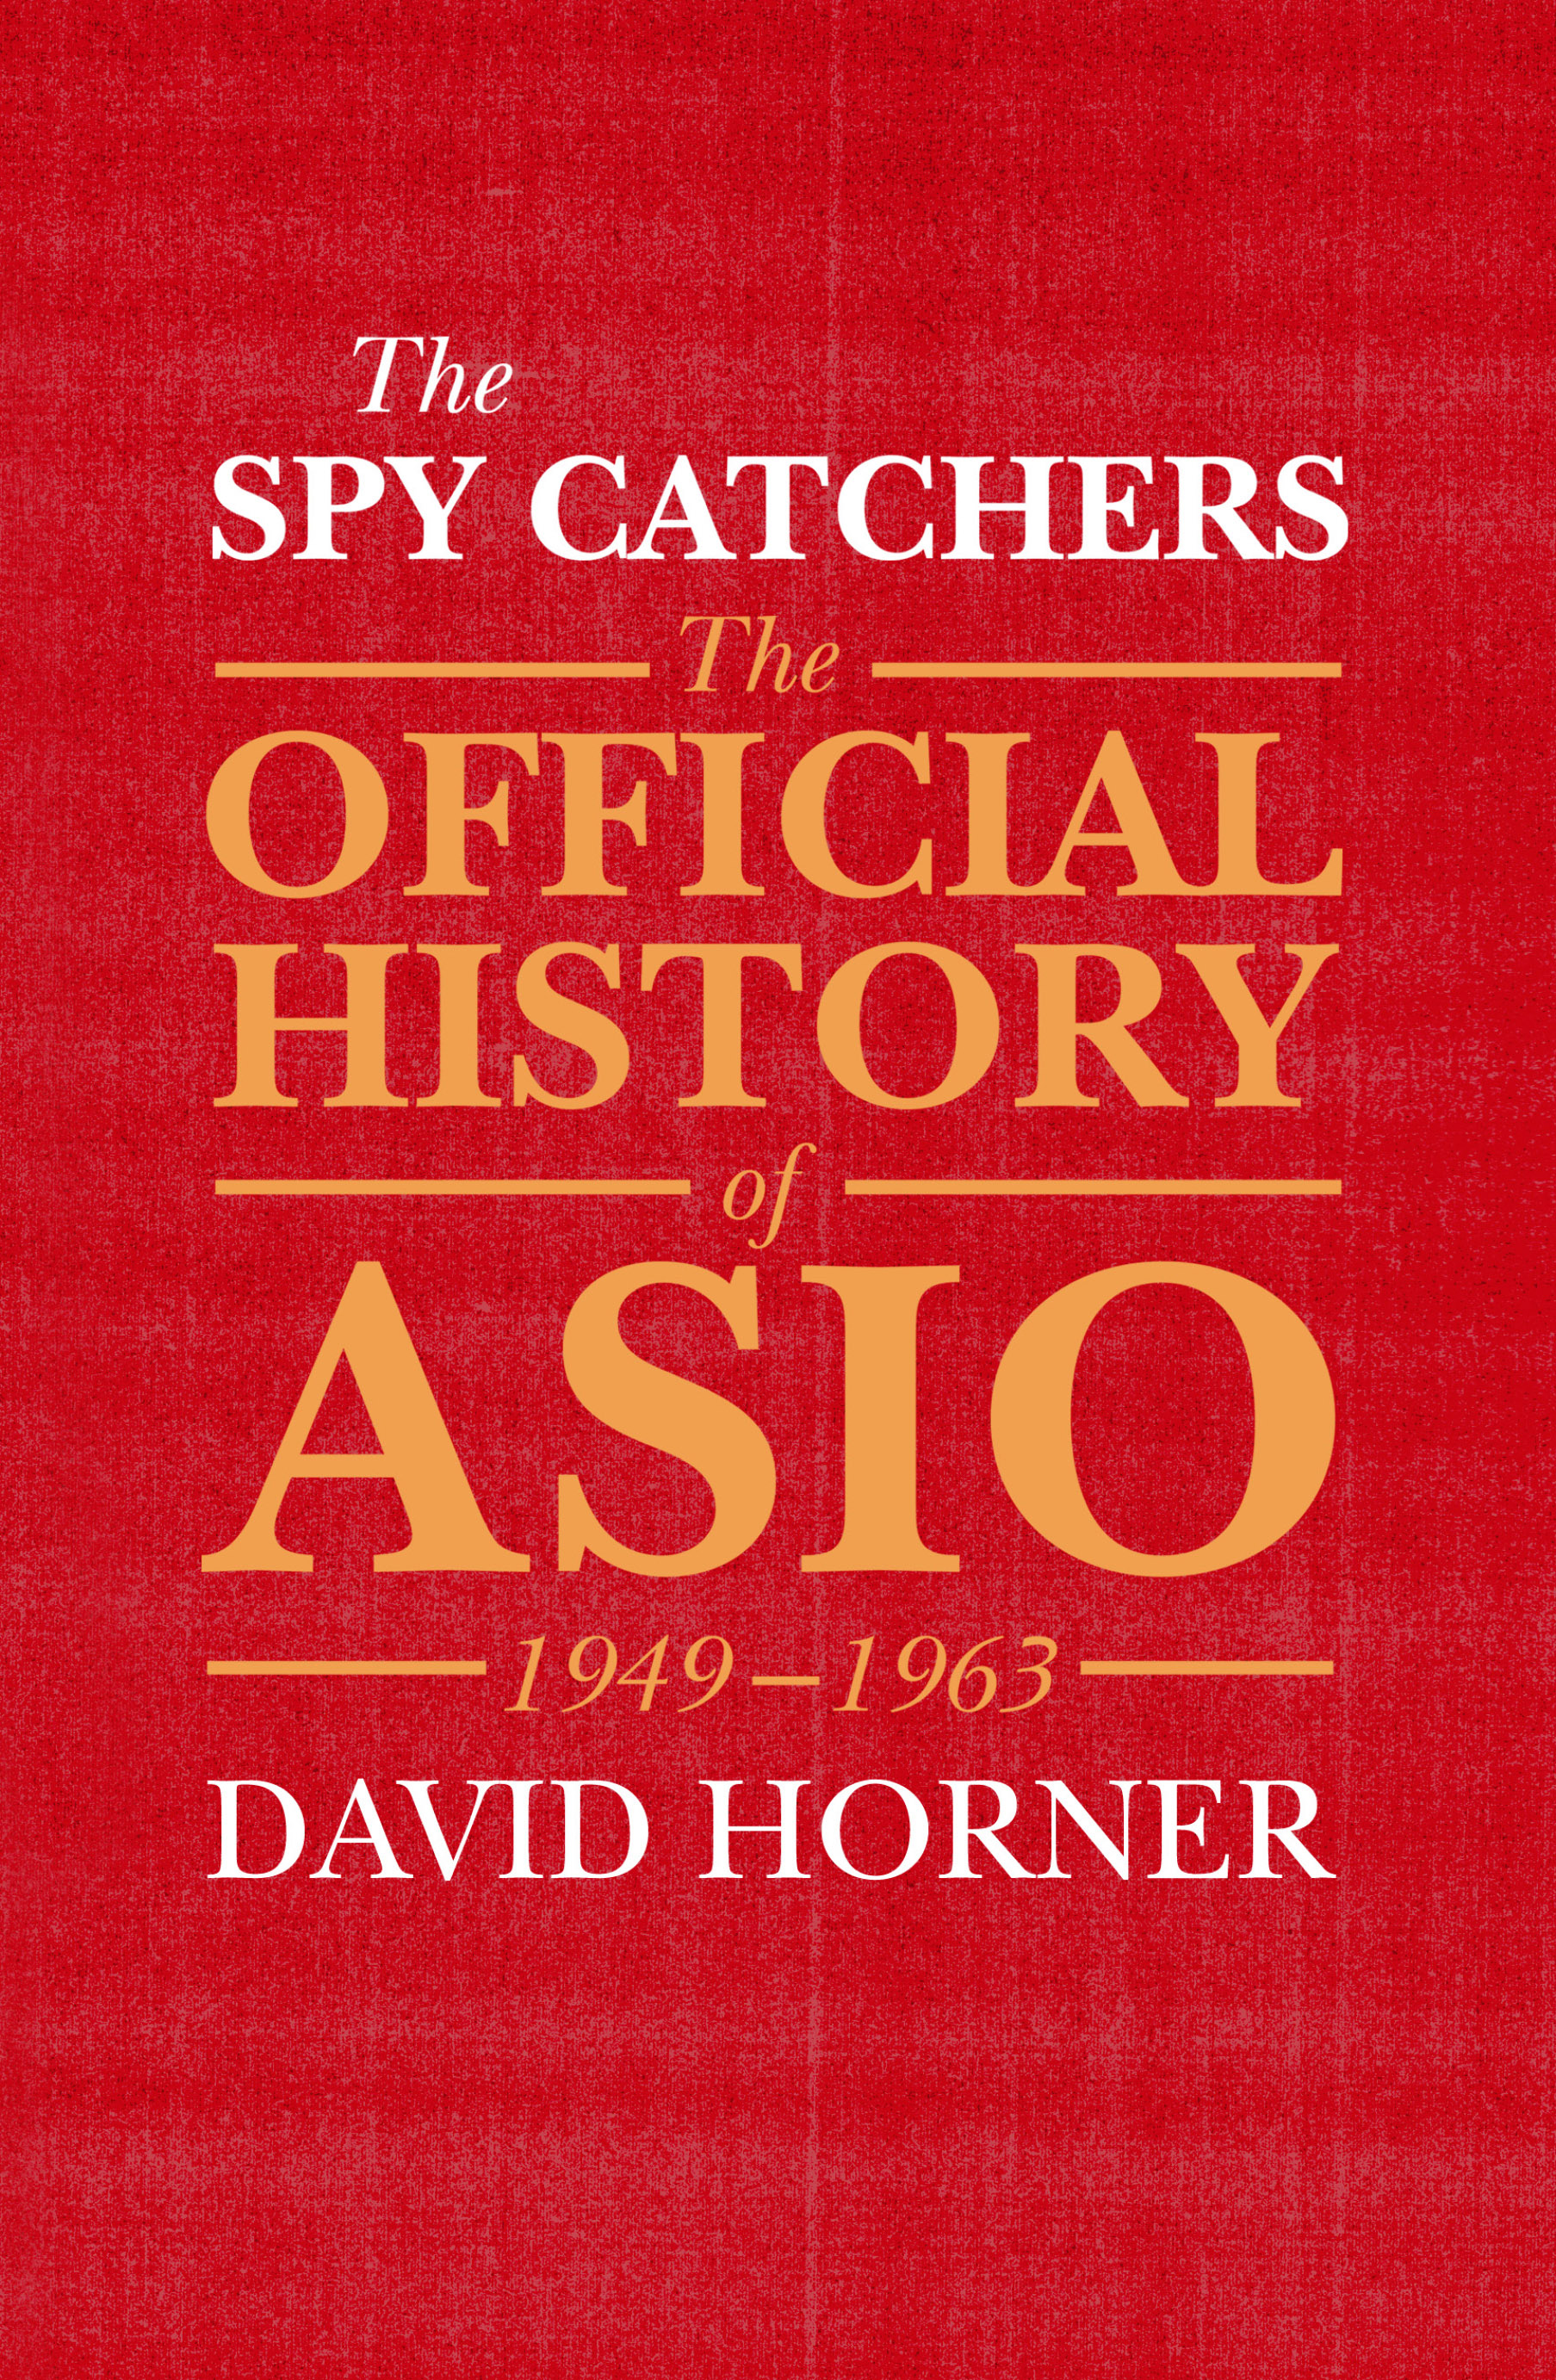 The Spy CatchersThe Official History of Asio, 1949-1963